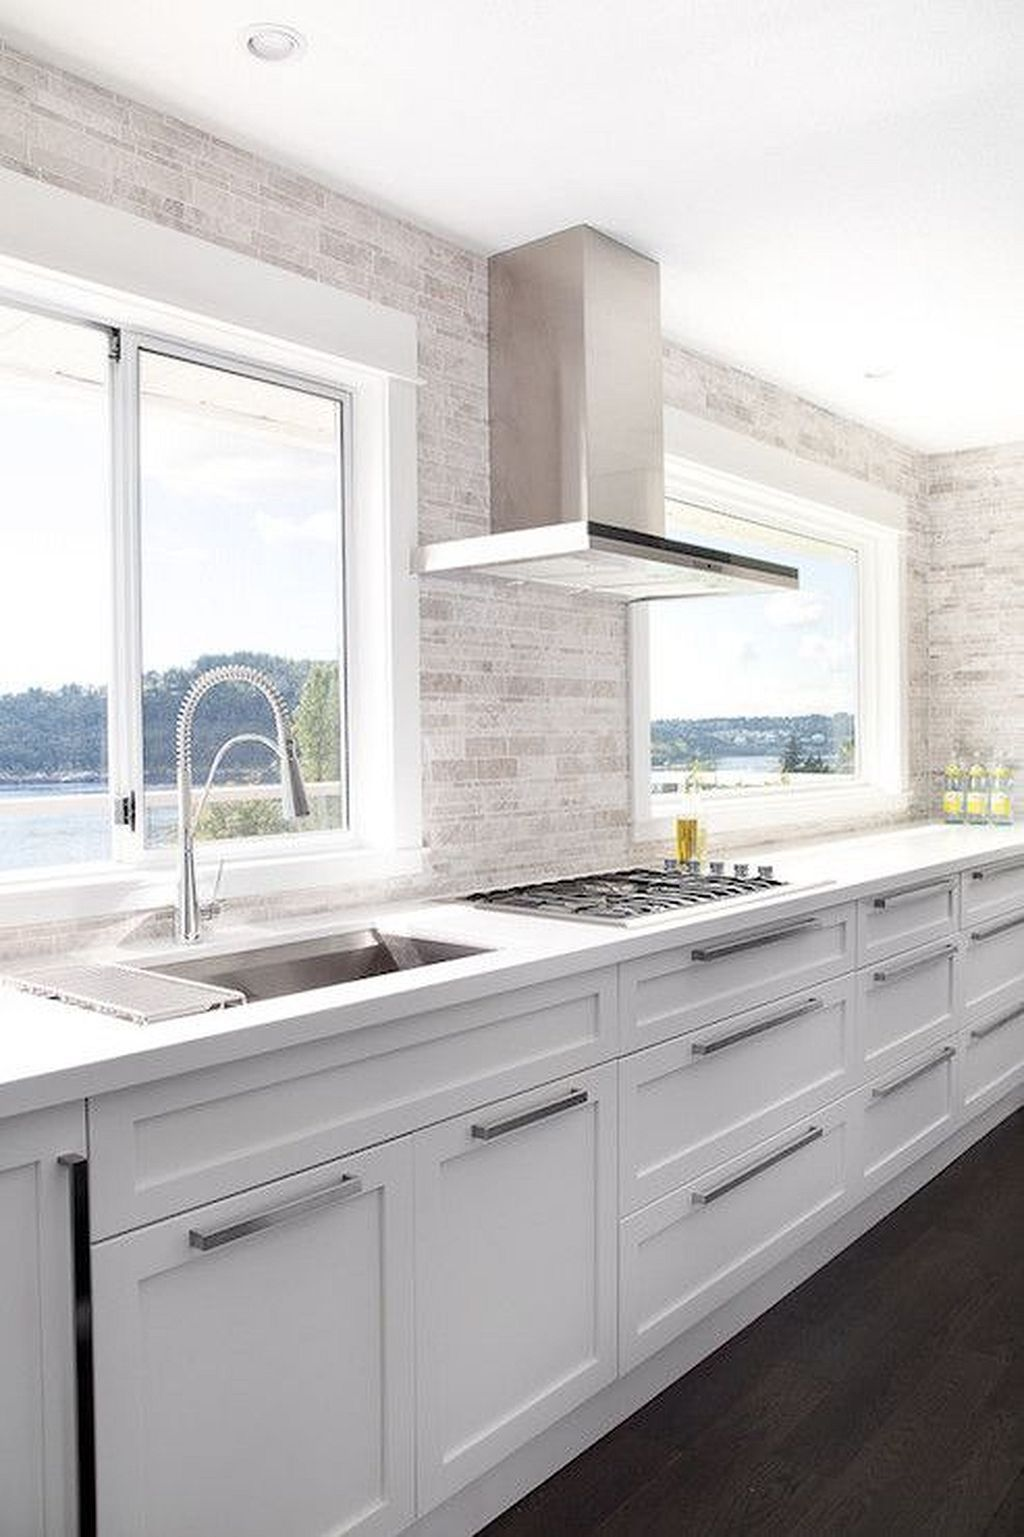 45 Modern White Kitchen Cabinets And Backsplash Design Ideas White Modern Kitchen White Contemporary Kitchen Kitchen Backsplash Designs